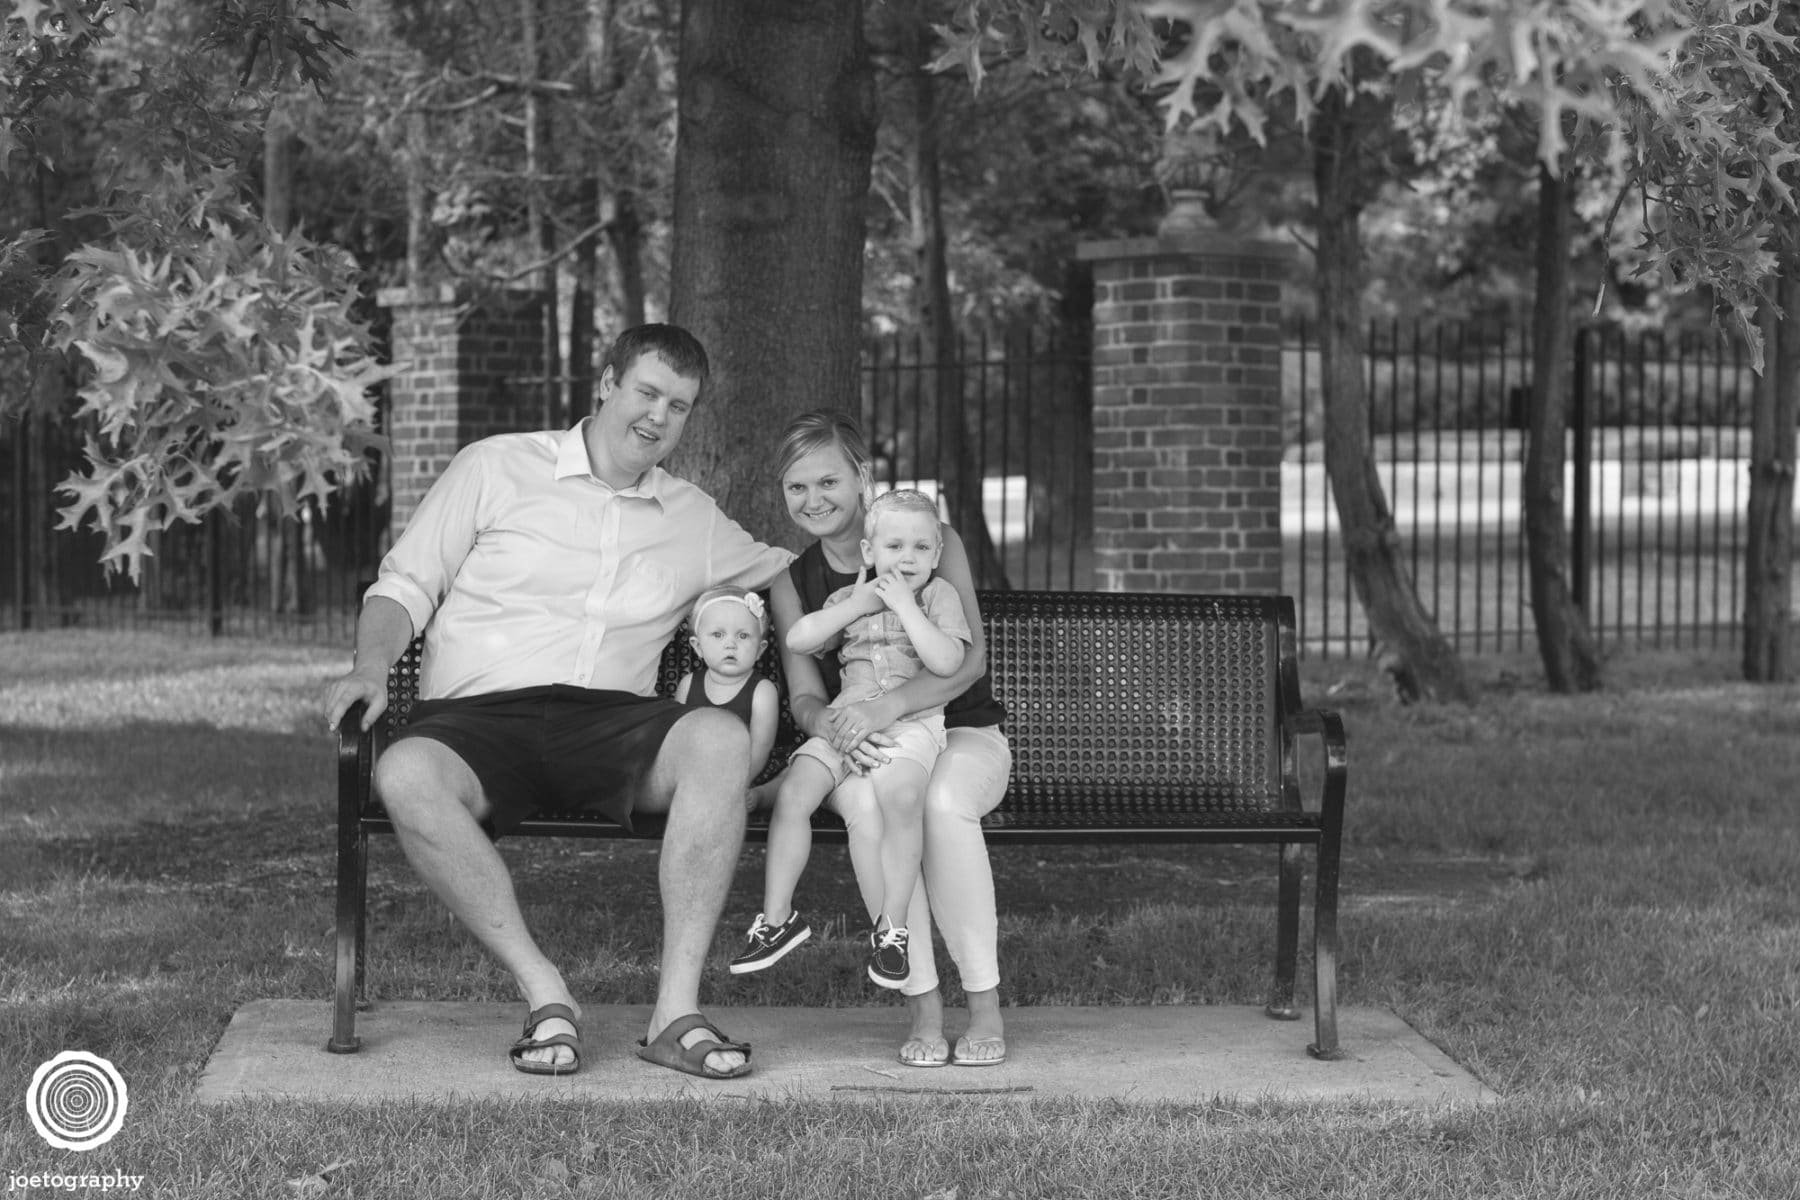 winkleman-family-photographs-carmel-indiana-33